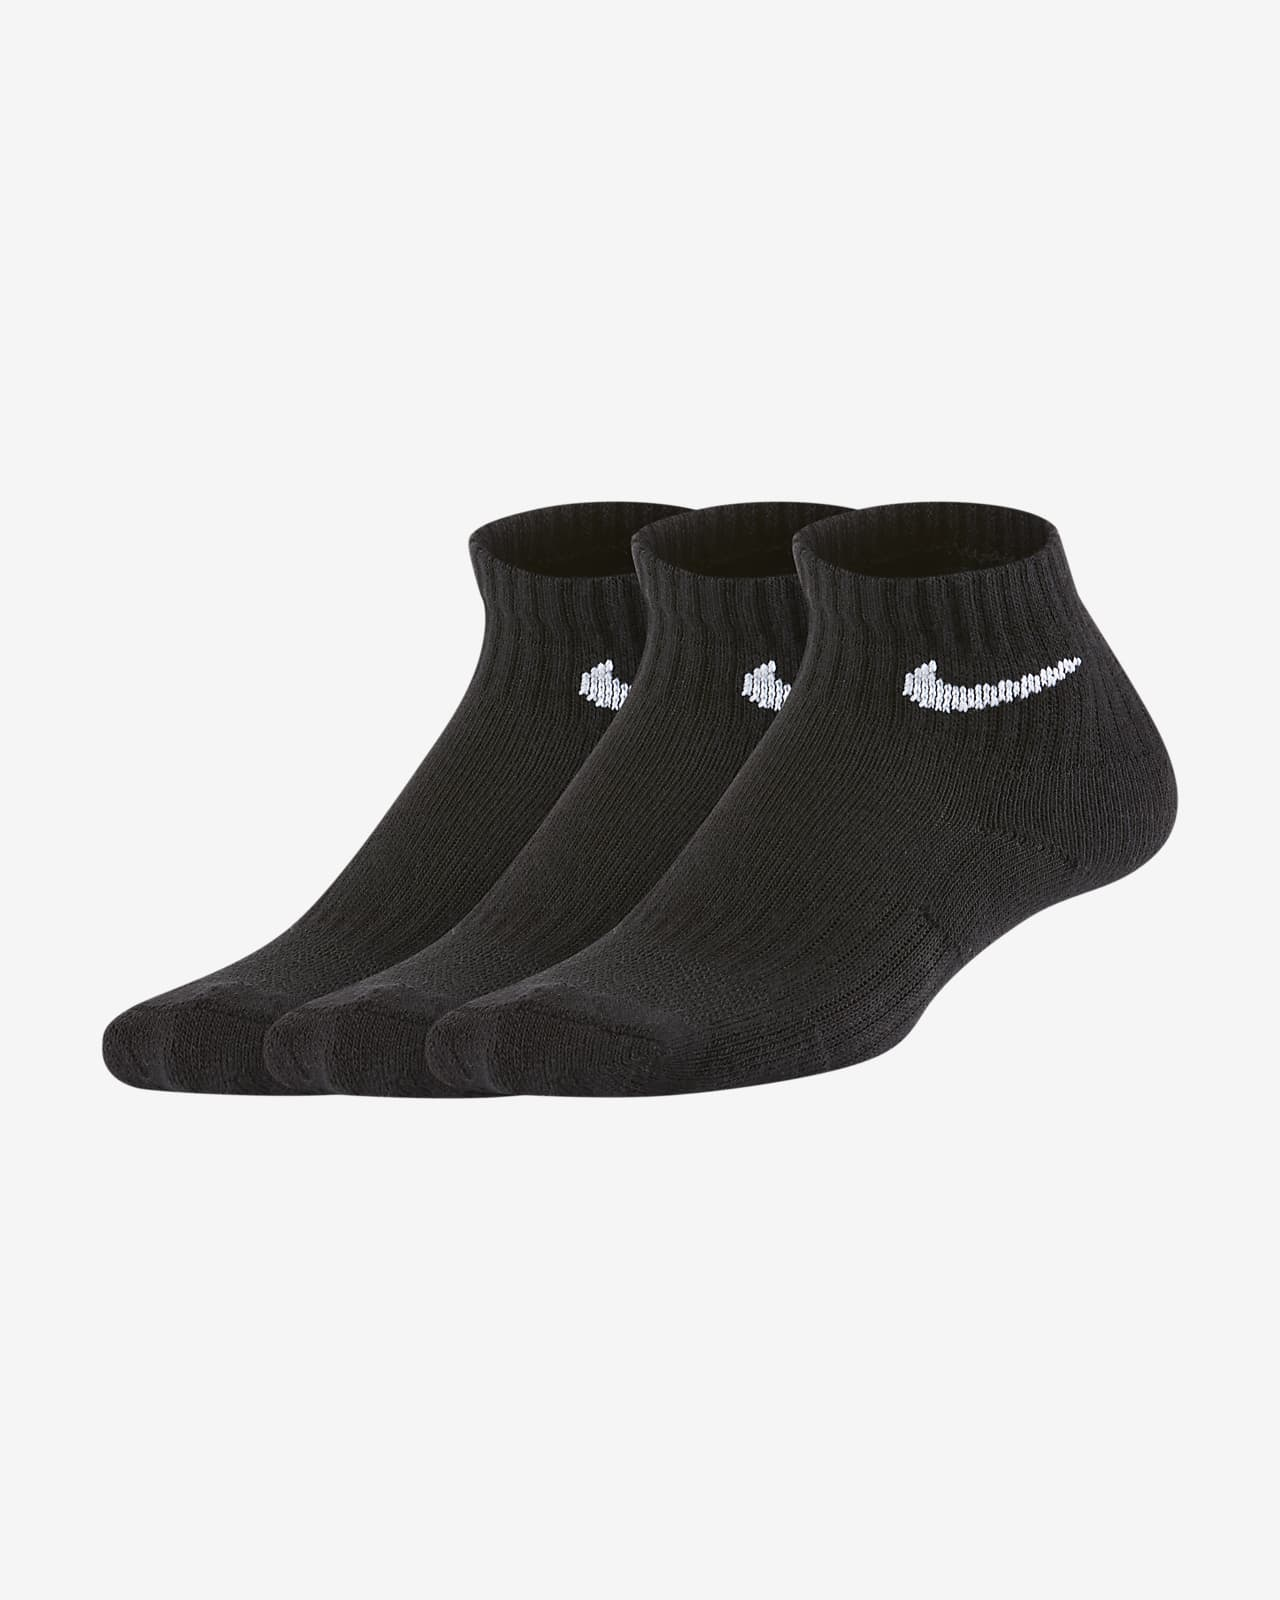 Nike Dri-FIT Little Kids' Ankle Socks (3 Pairs)